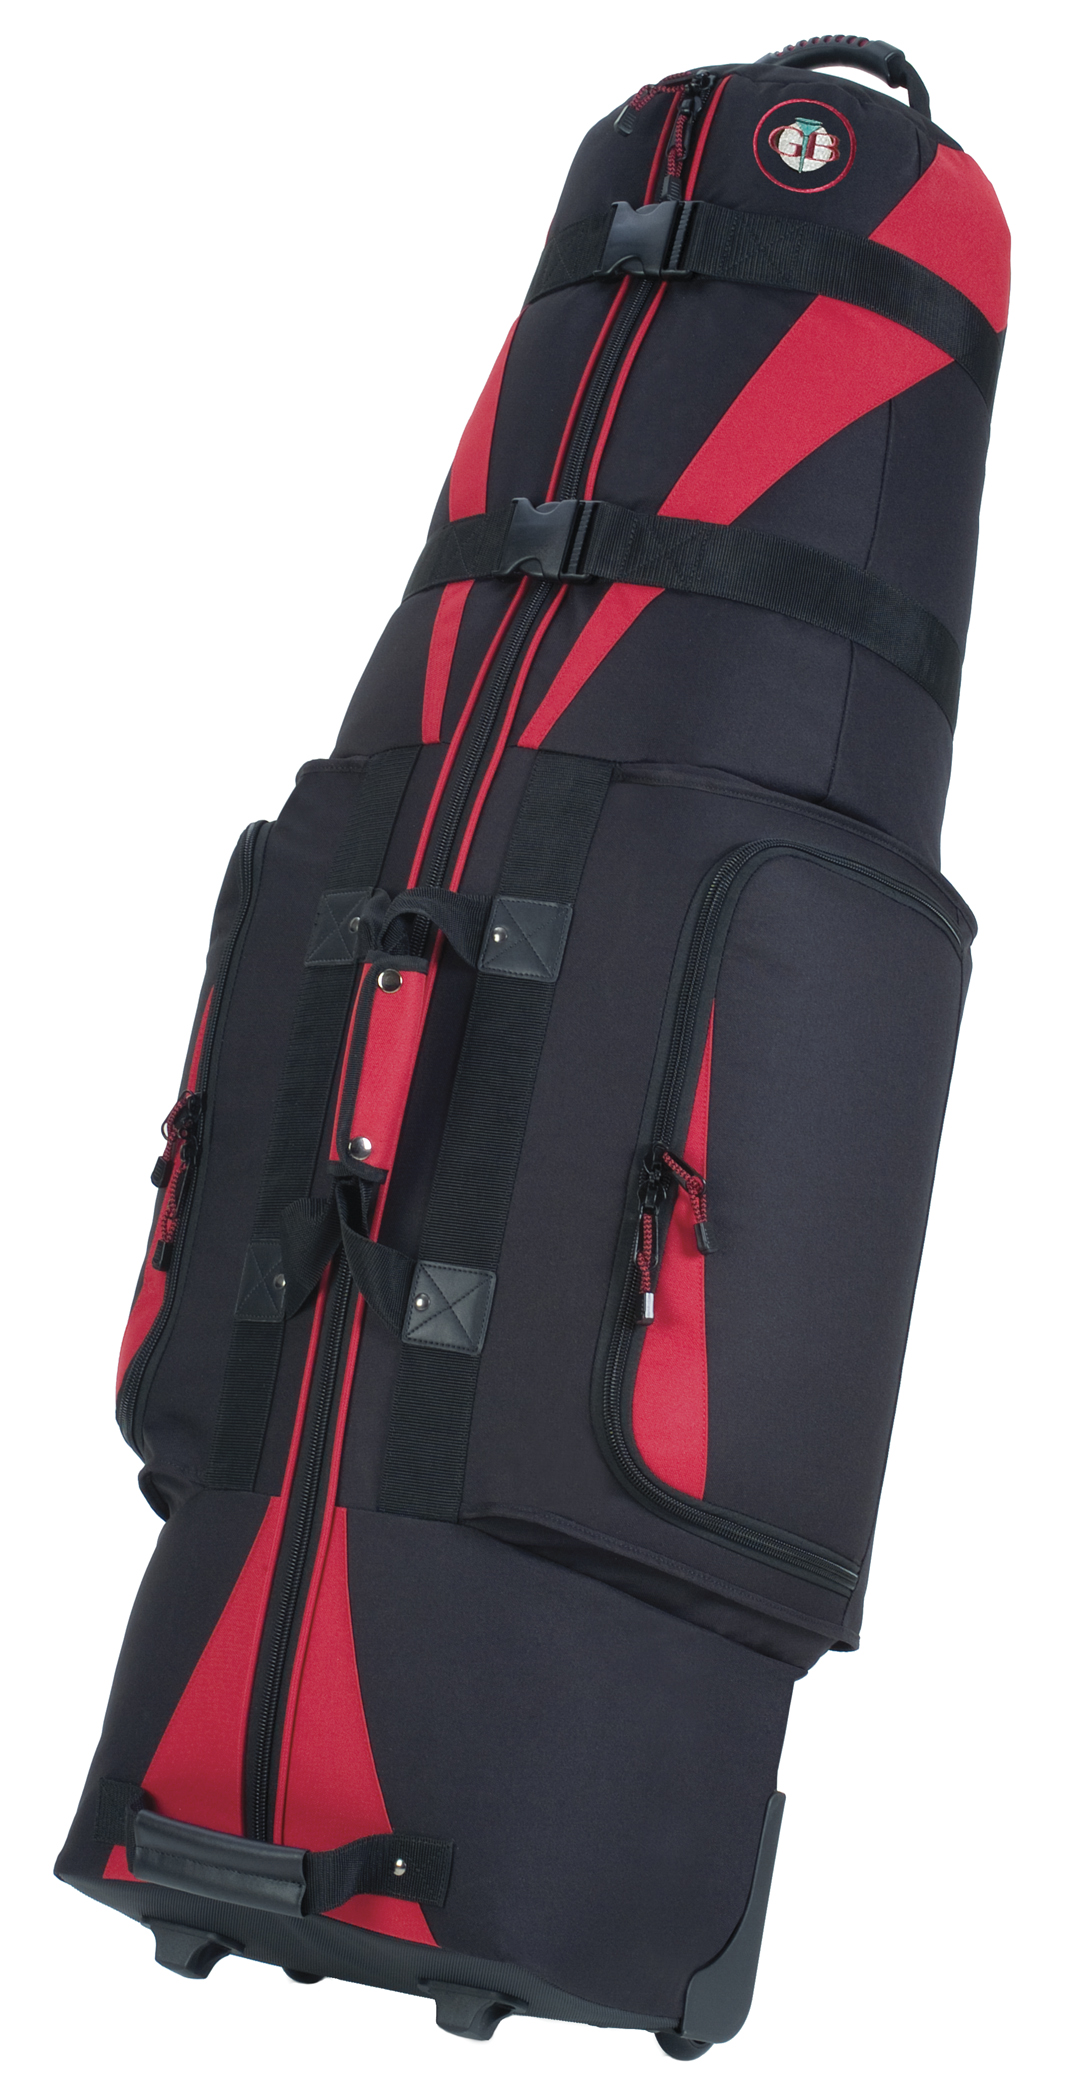 Caravan 3 0 Golf Travel Bag